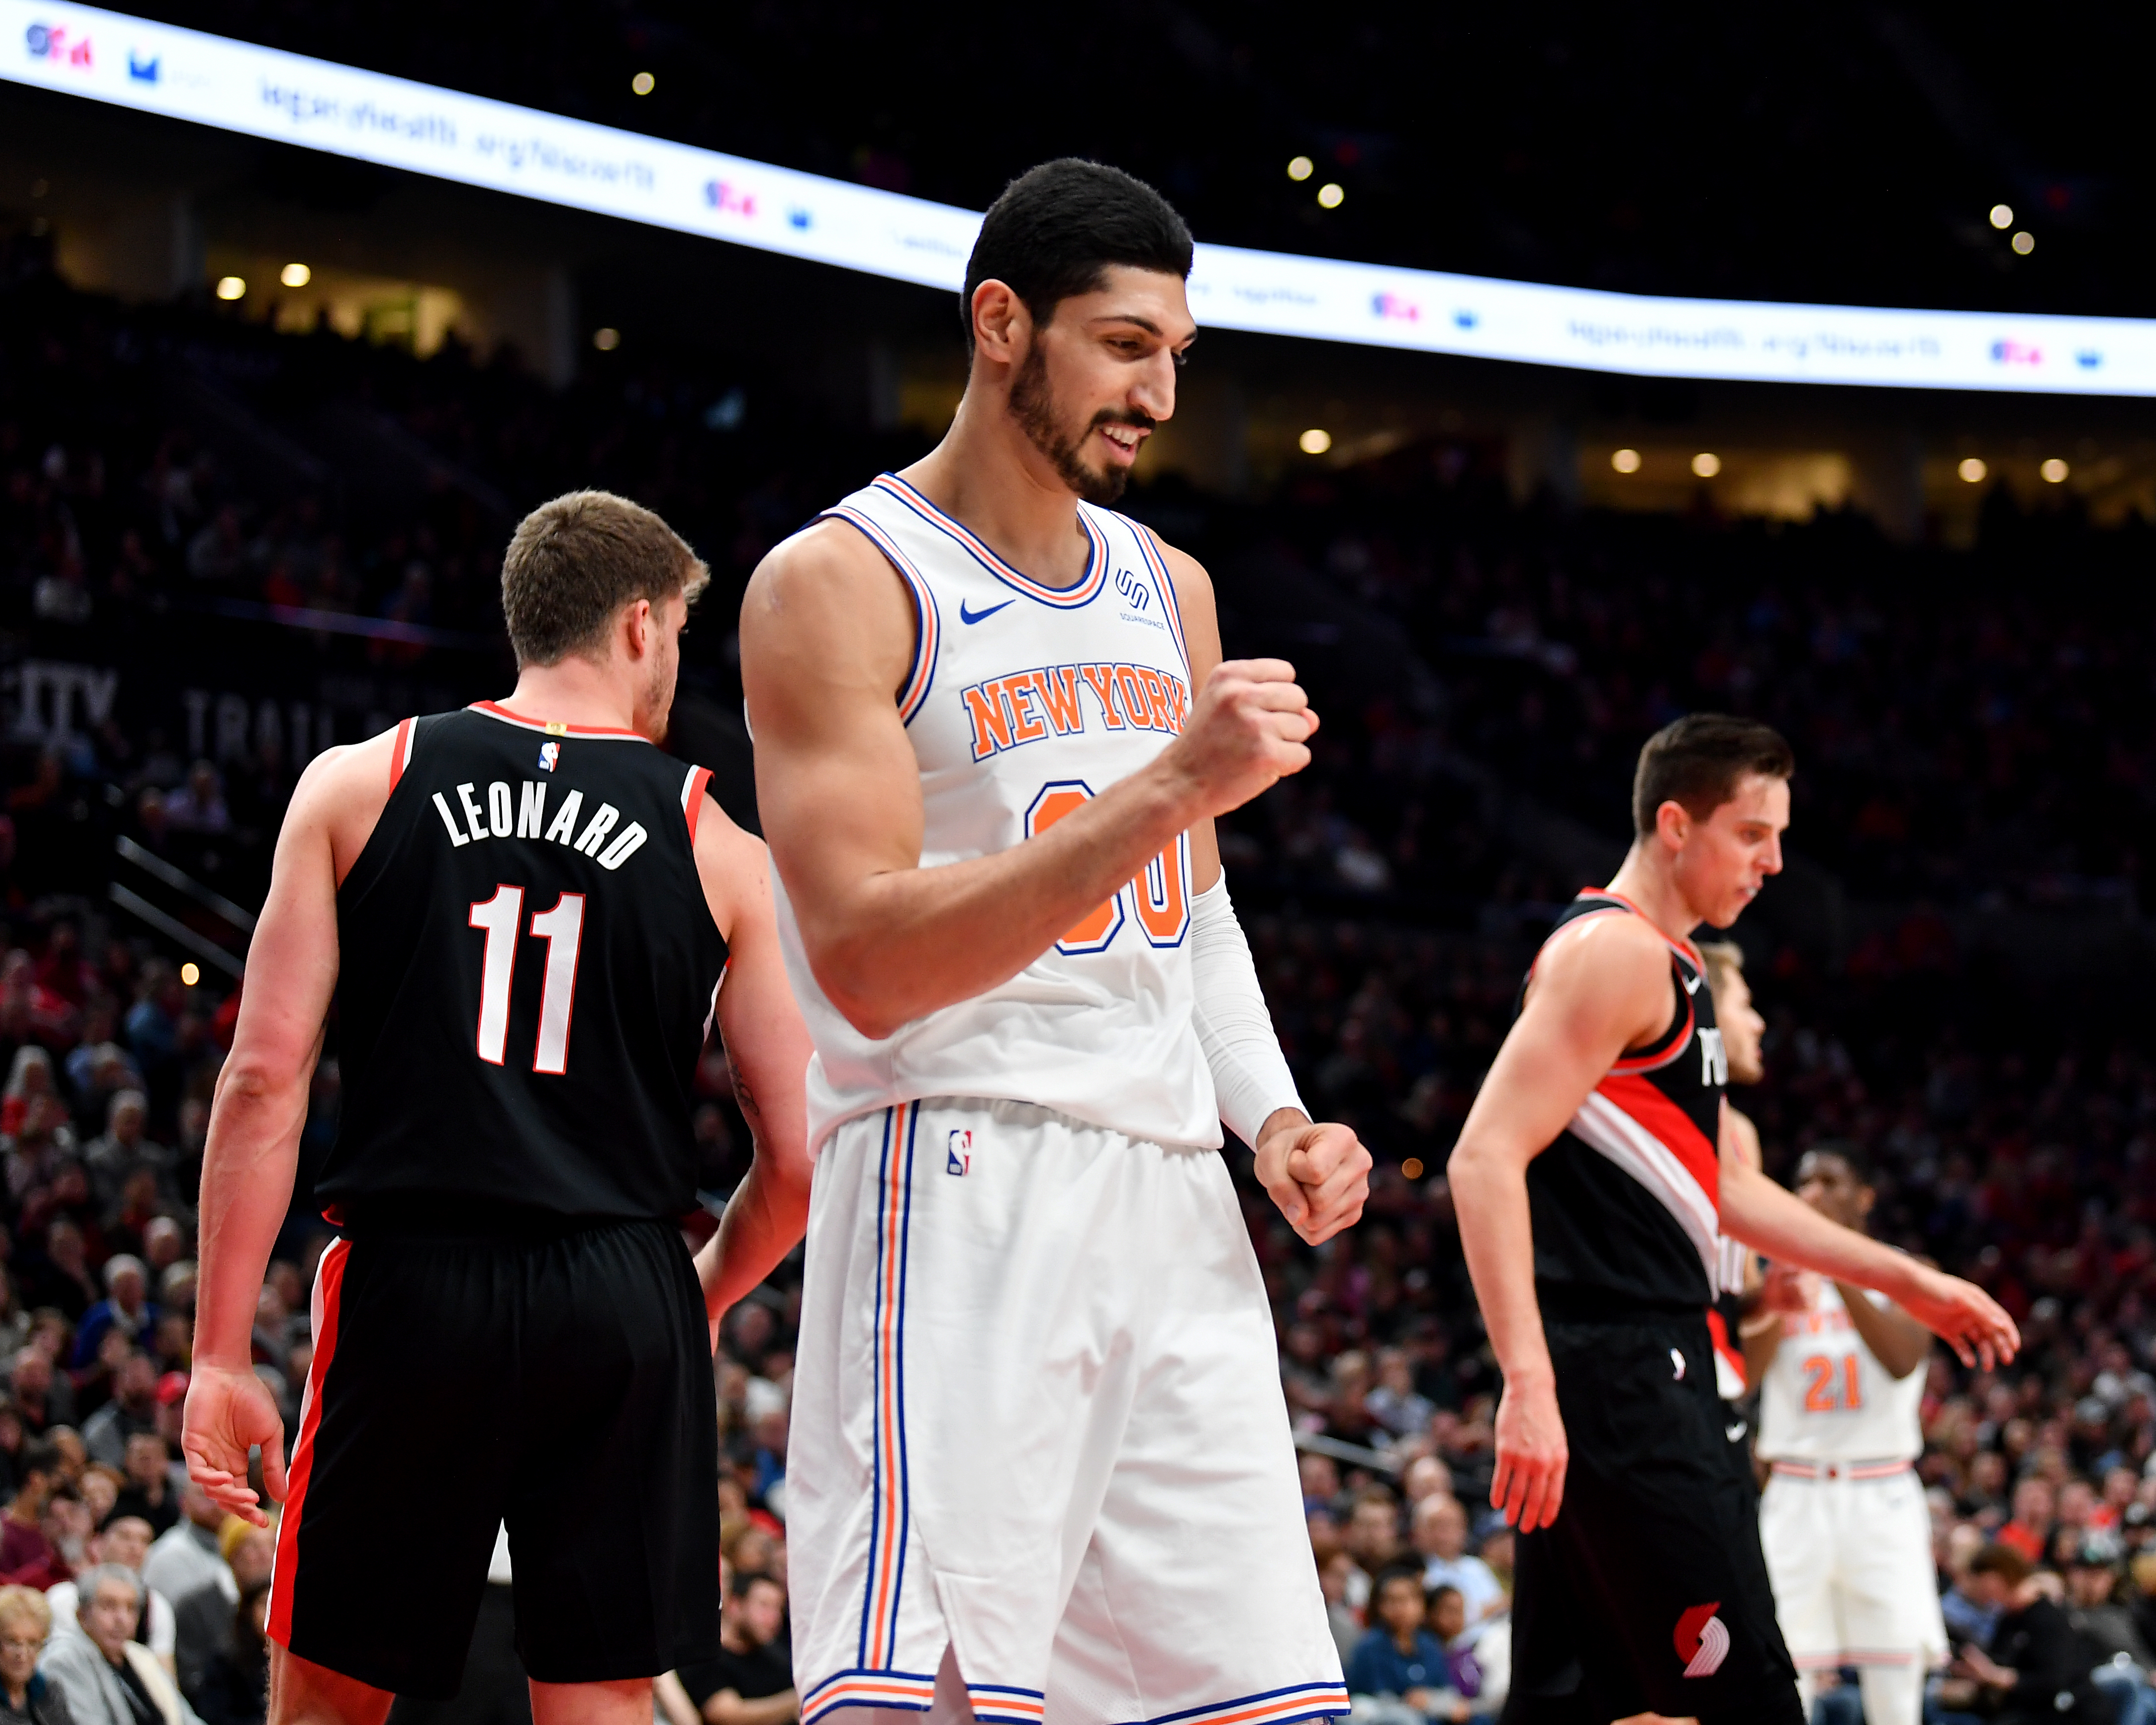 Enes Kanter #00 of the New York Knicks at the Moda Center on January 07, 2019 in Portland, Oregon.